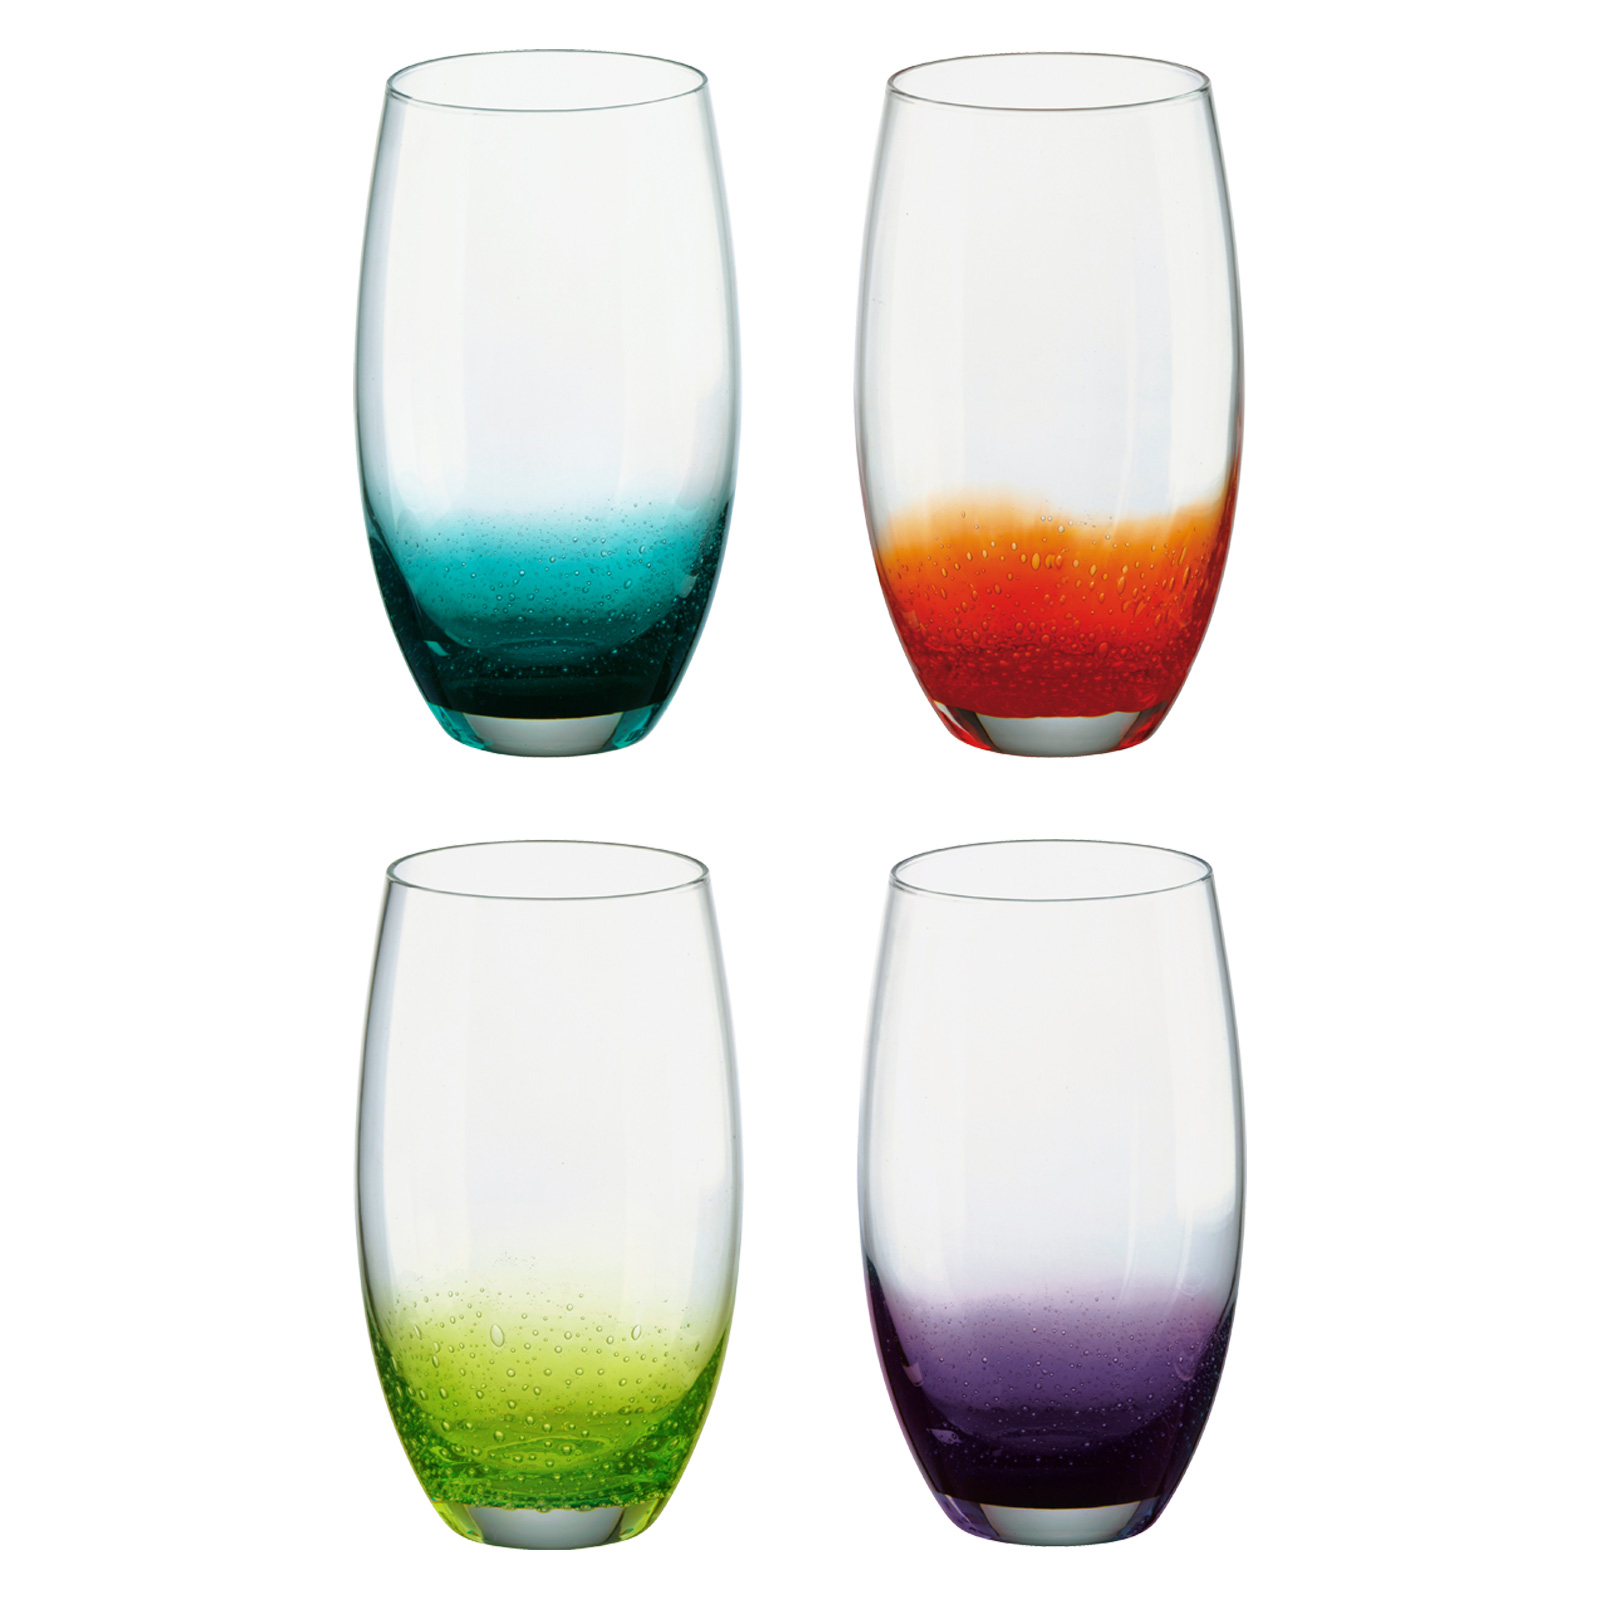 Fizz Hiball Tumblers - Set of 4